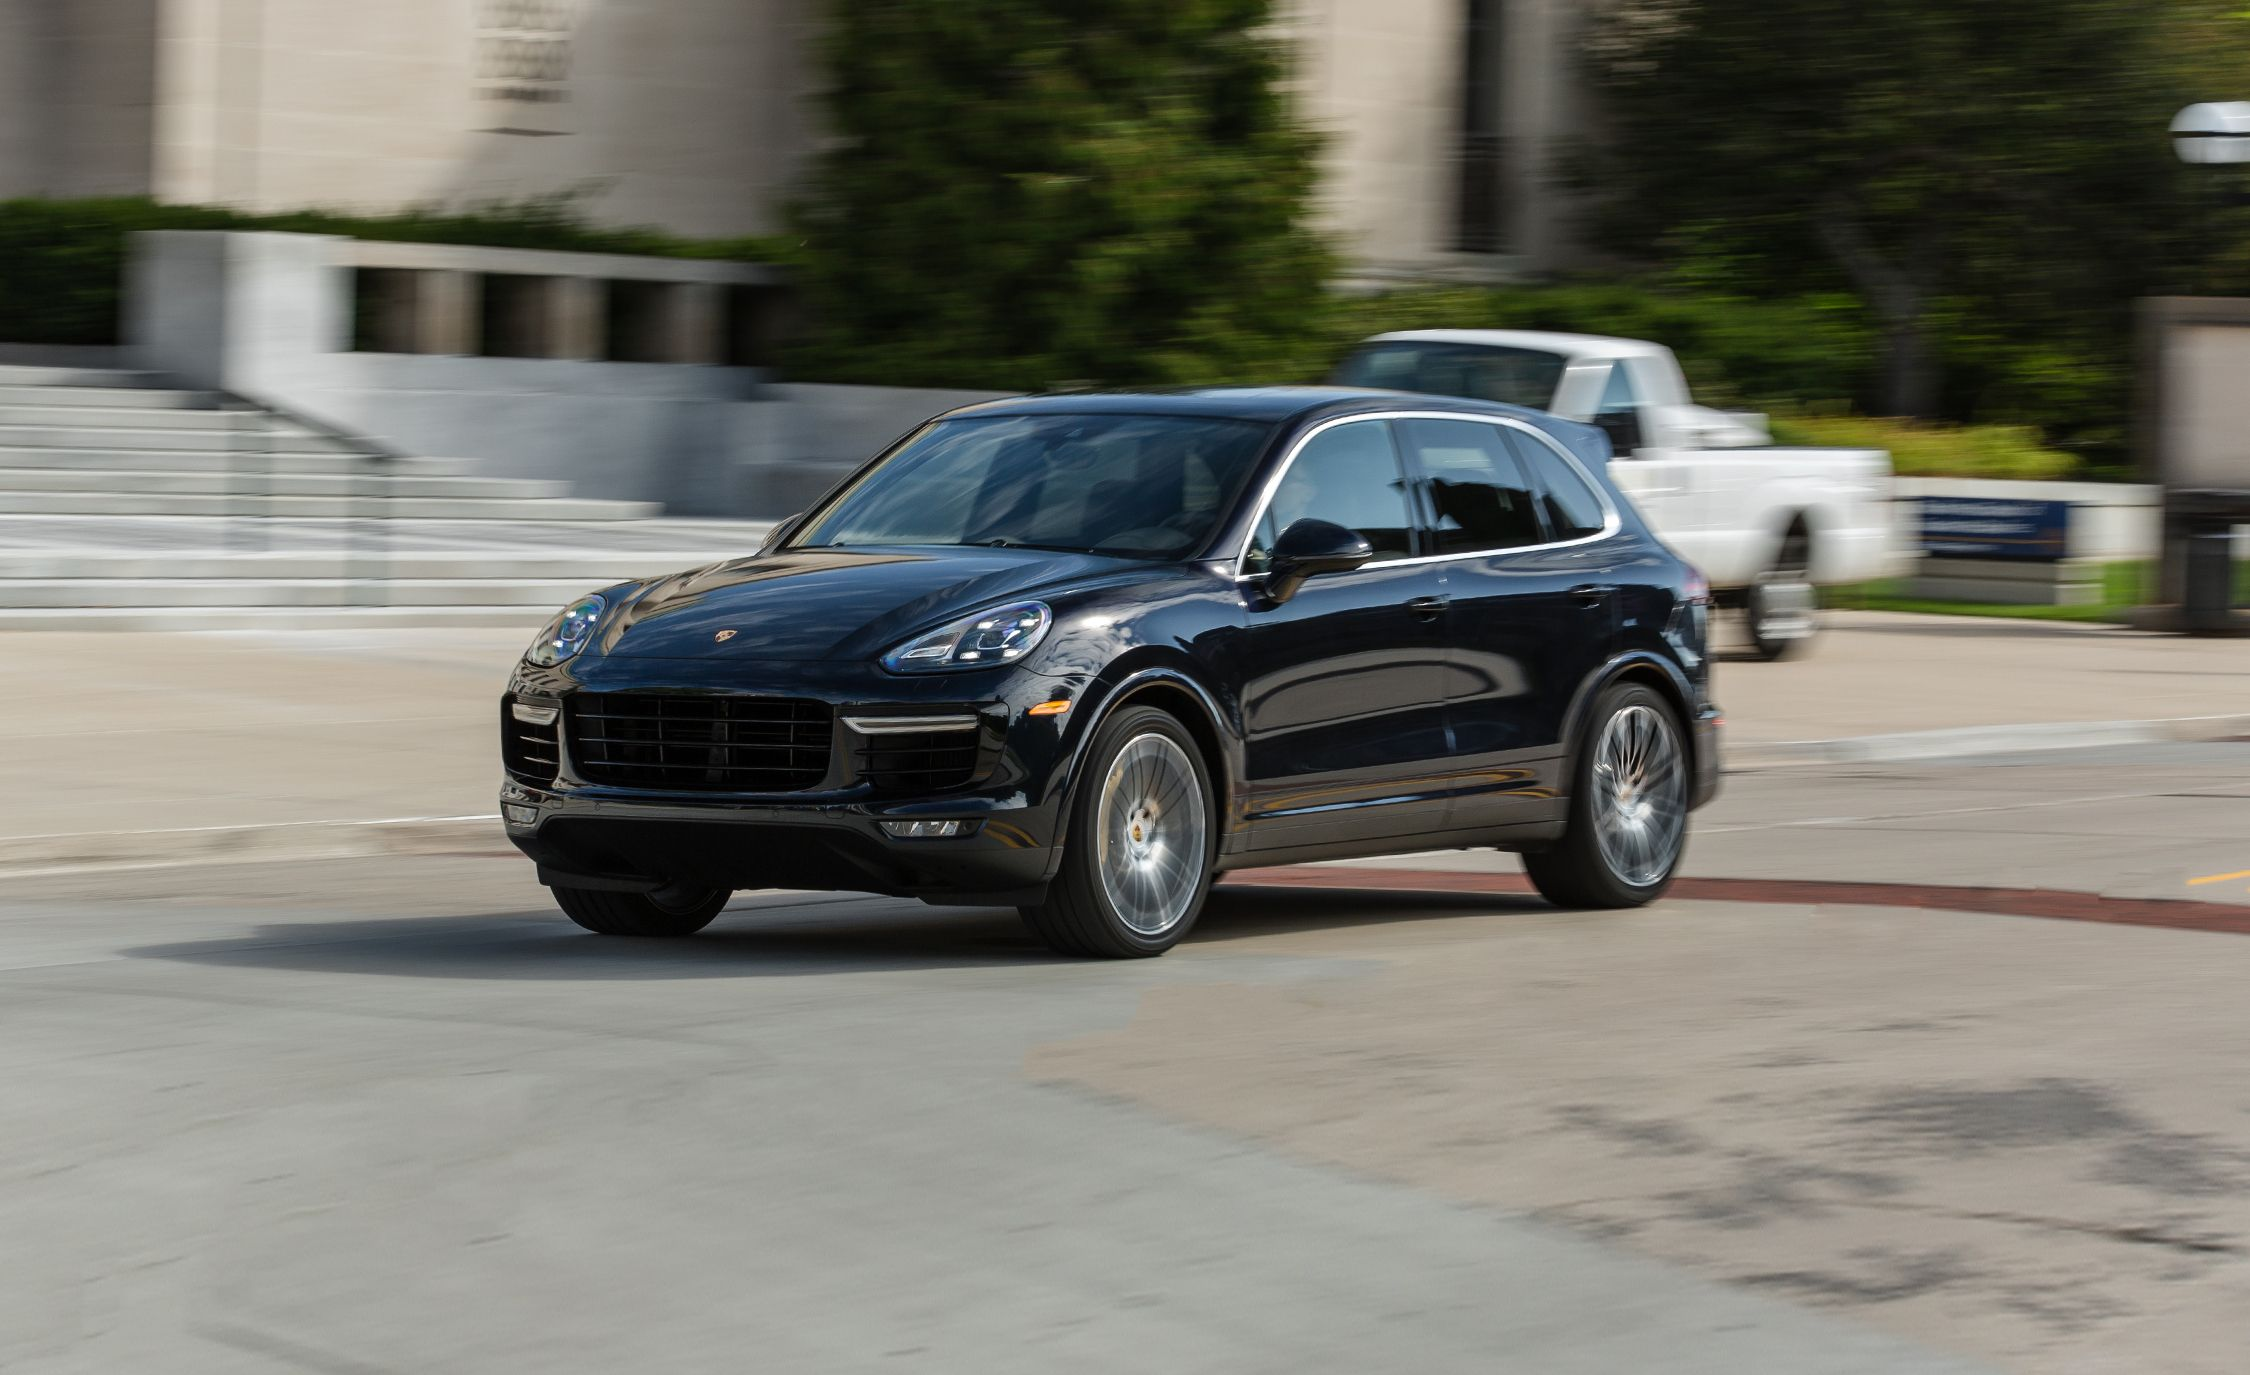 2017 porsche cayenne turbo s test review car and driver photo 691422 s original